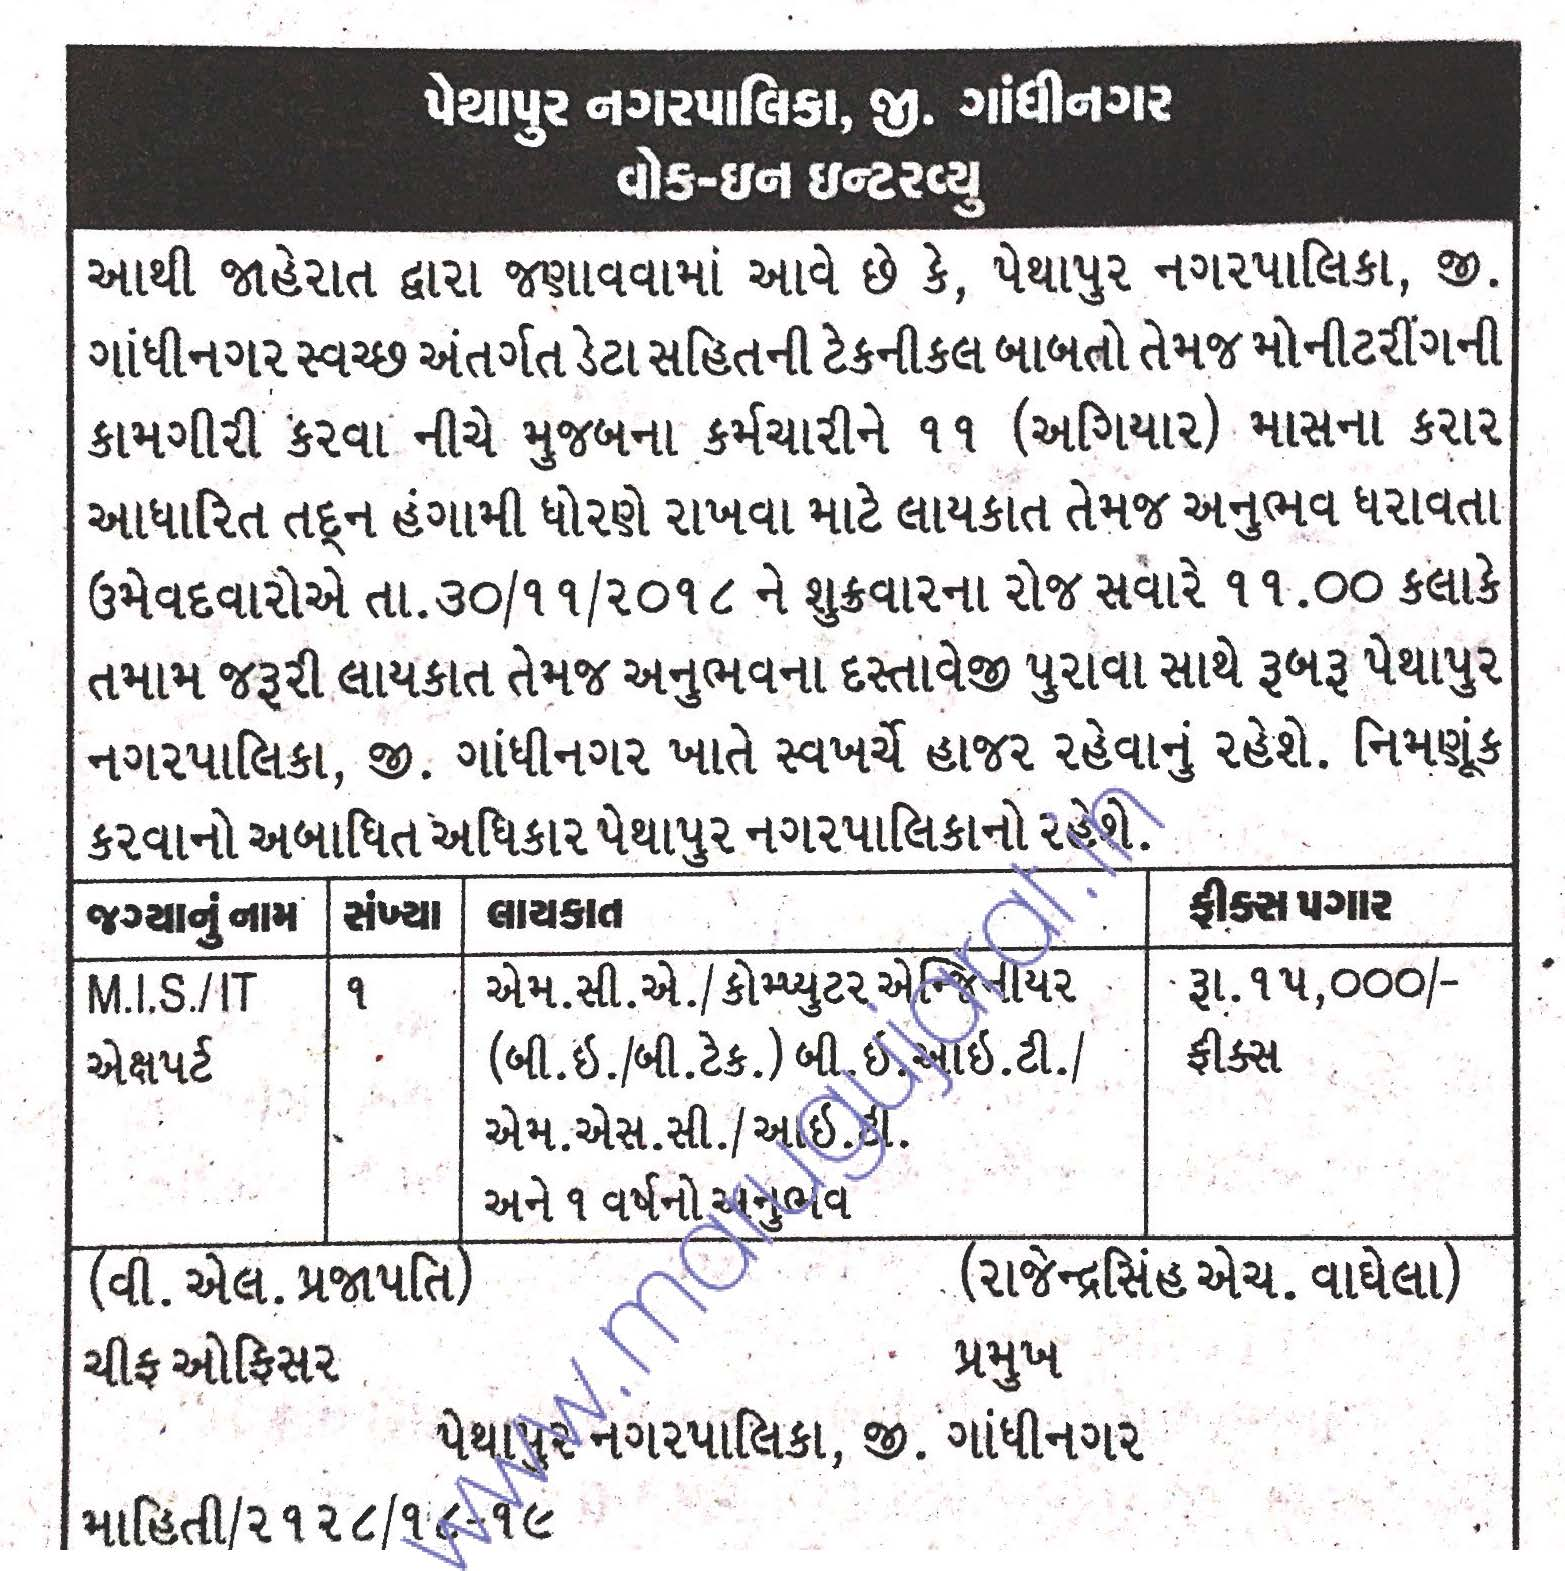 Pethapur Nagarpalika Recruitment for MIS/ IT Expert Post